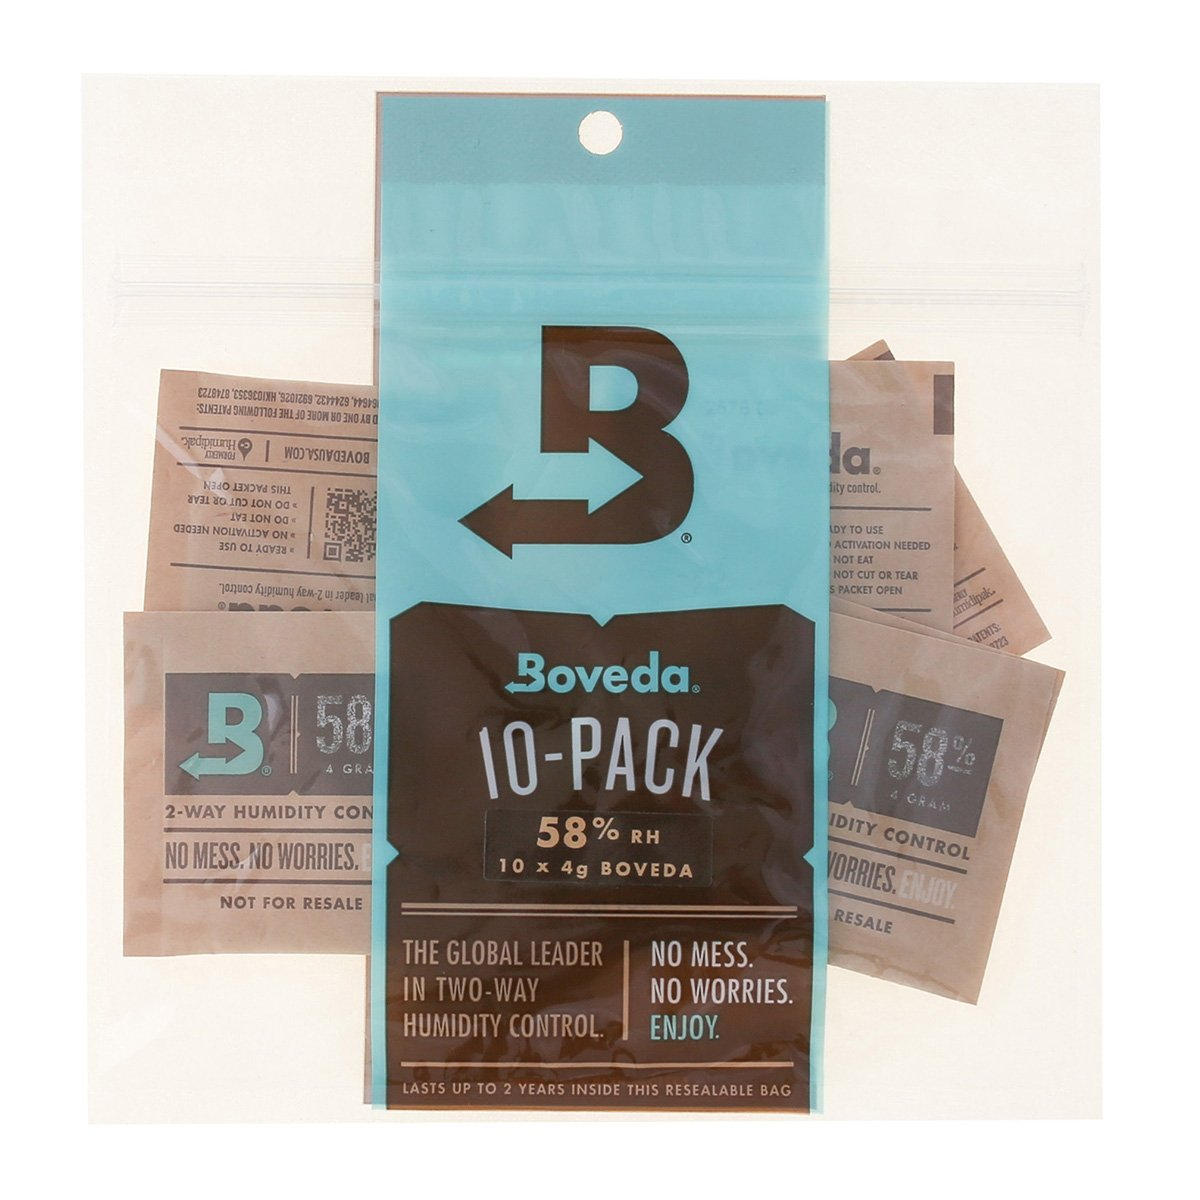 Boveda 58 Percent RH 2-Way Humidity Control, 4 Gram - 10 Pack by Boveda